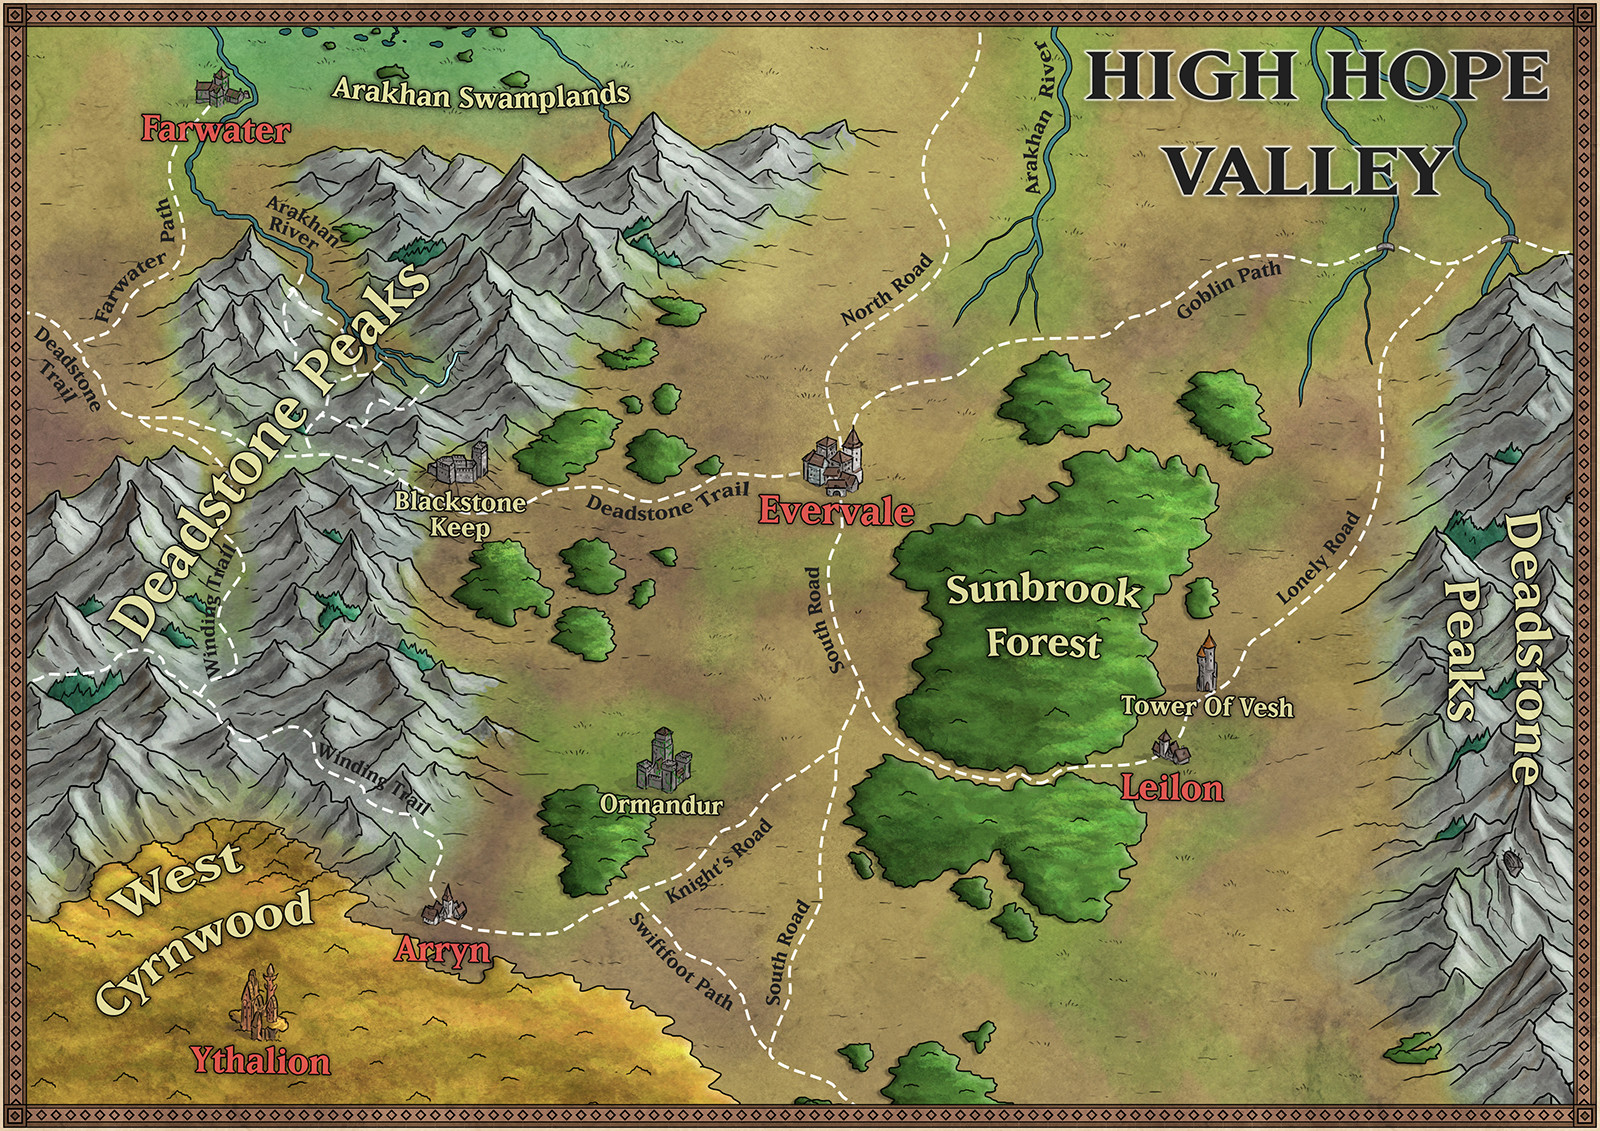 Robert altbauer high hope valley with names v1